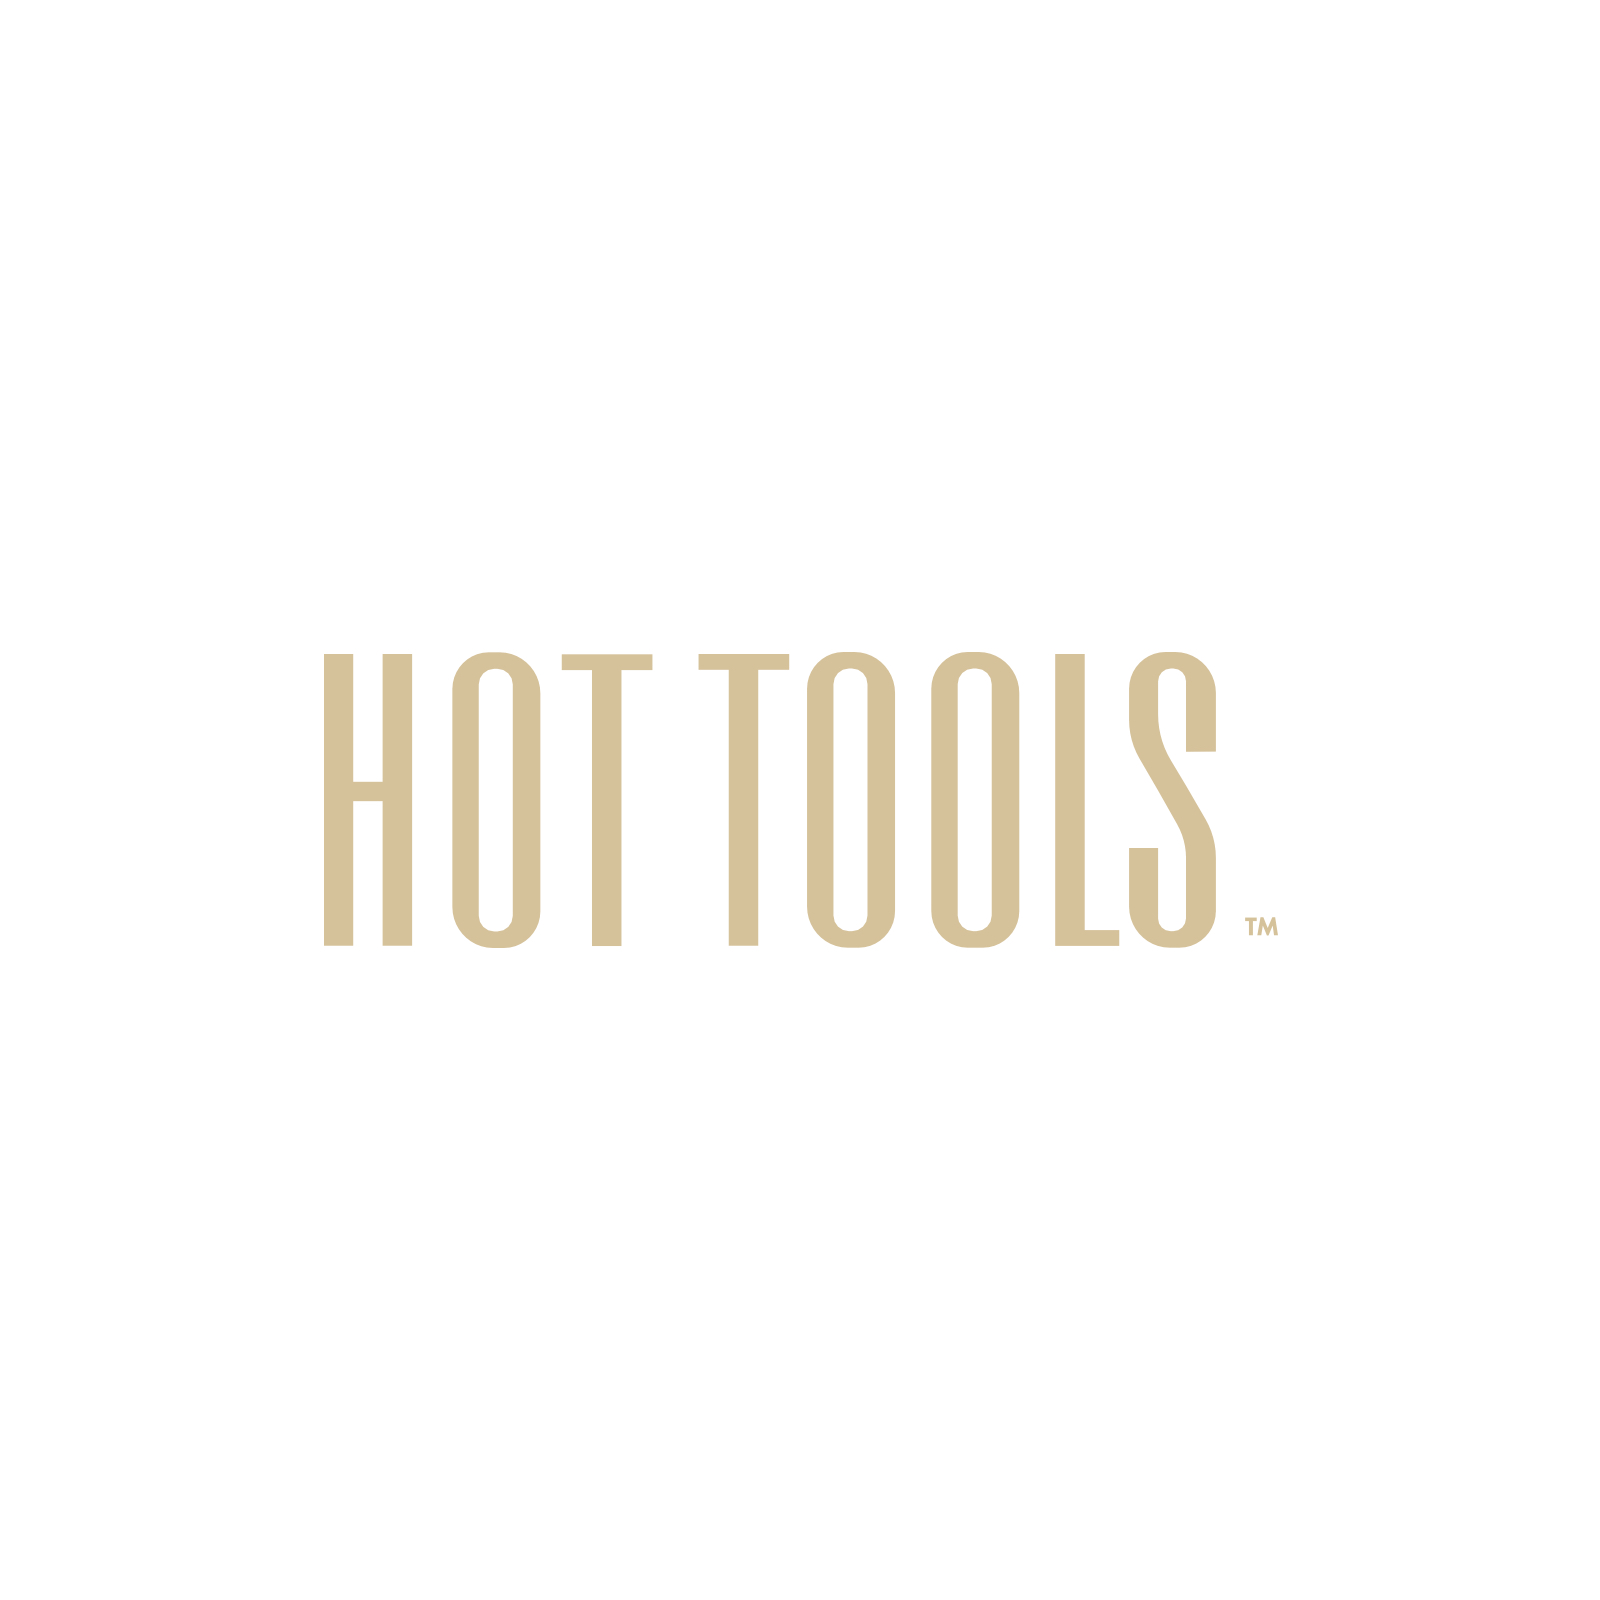 """Hot Tools Pro Signature Detachable One Step Volumizer and Hair Dryer, 1.5"""" Small Barrel product image"""